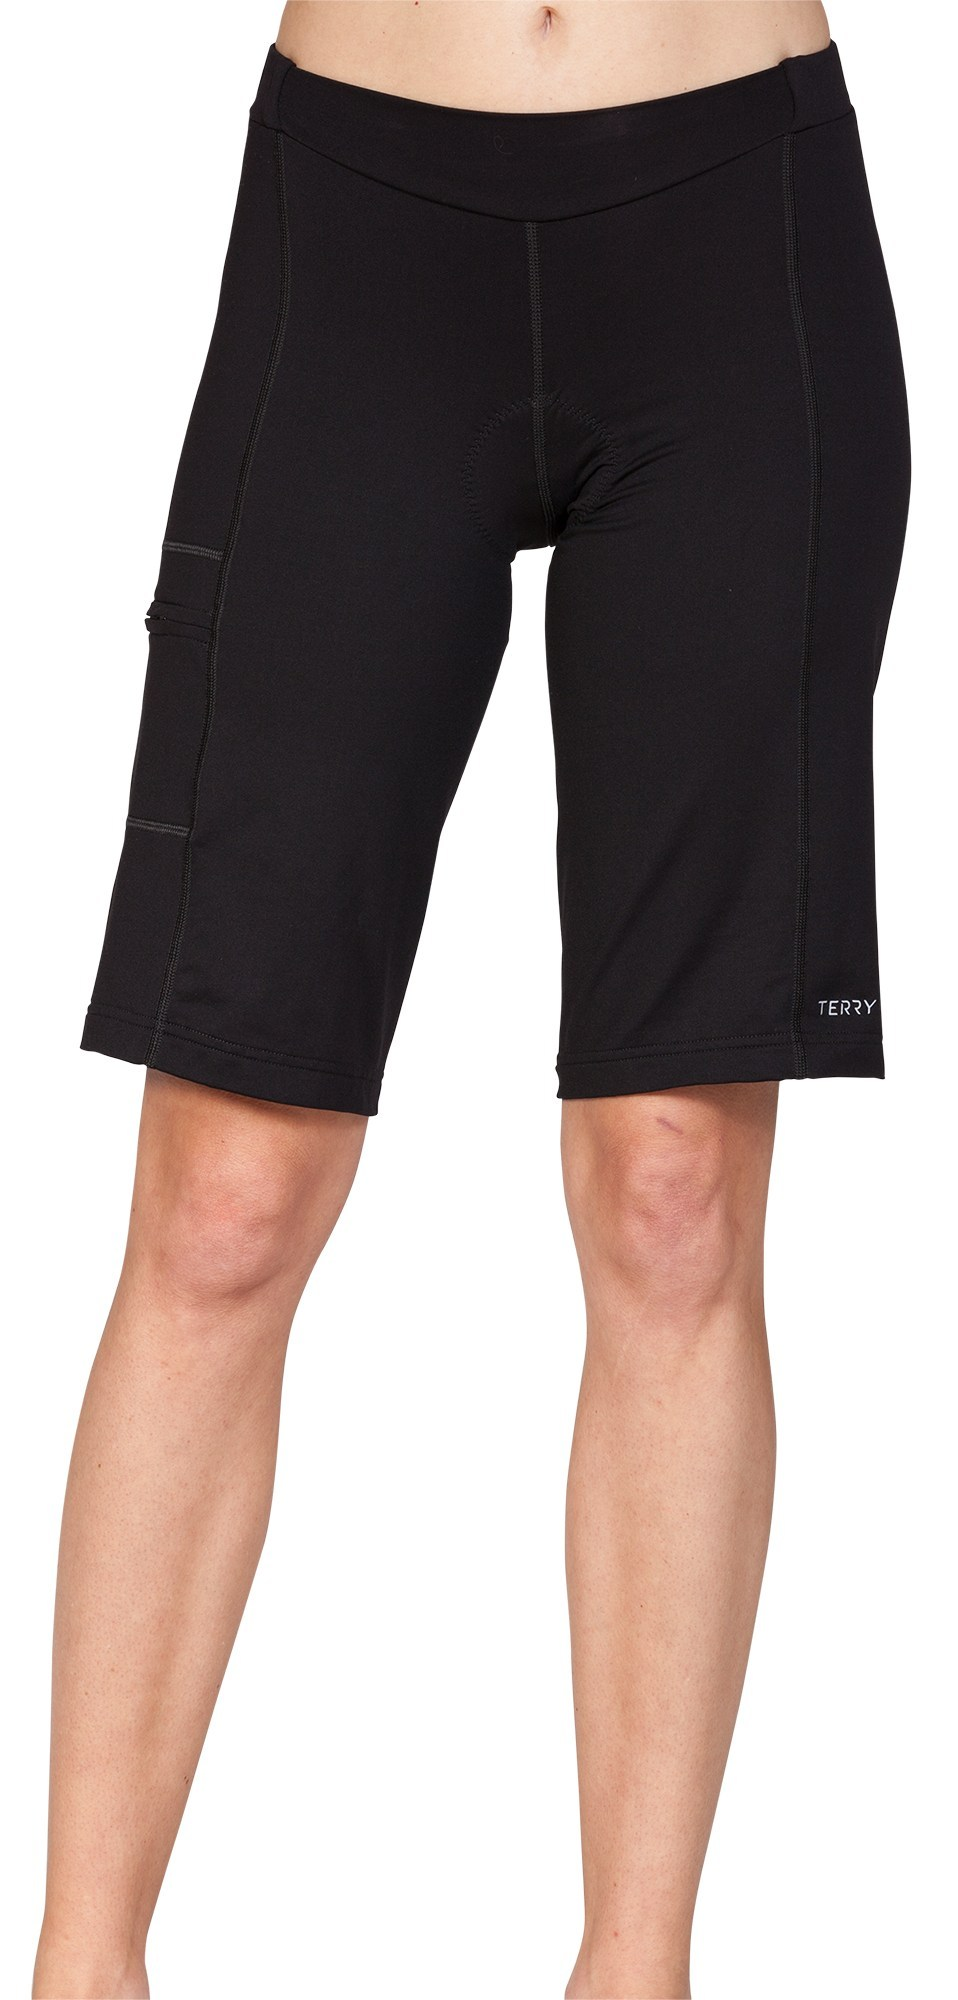 Terry Liberty Bike Shorts - Women's